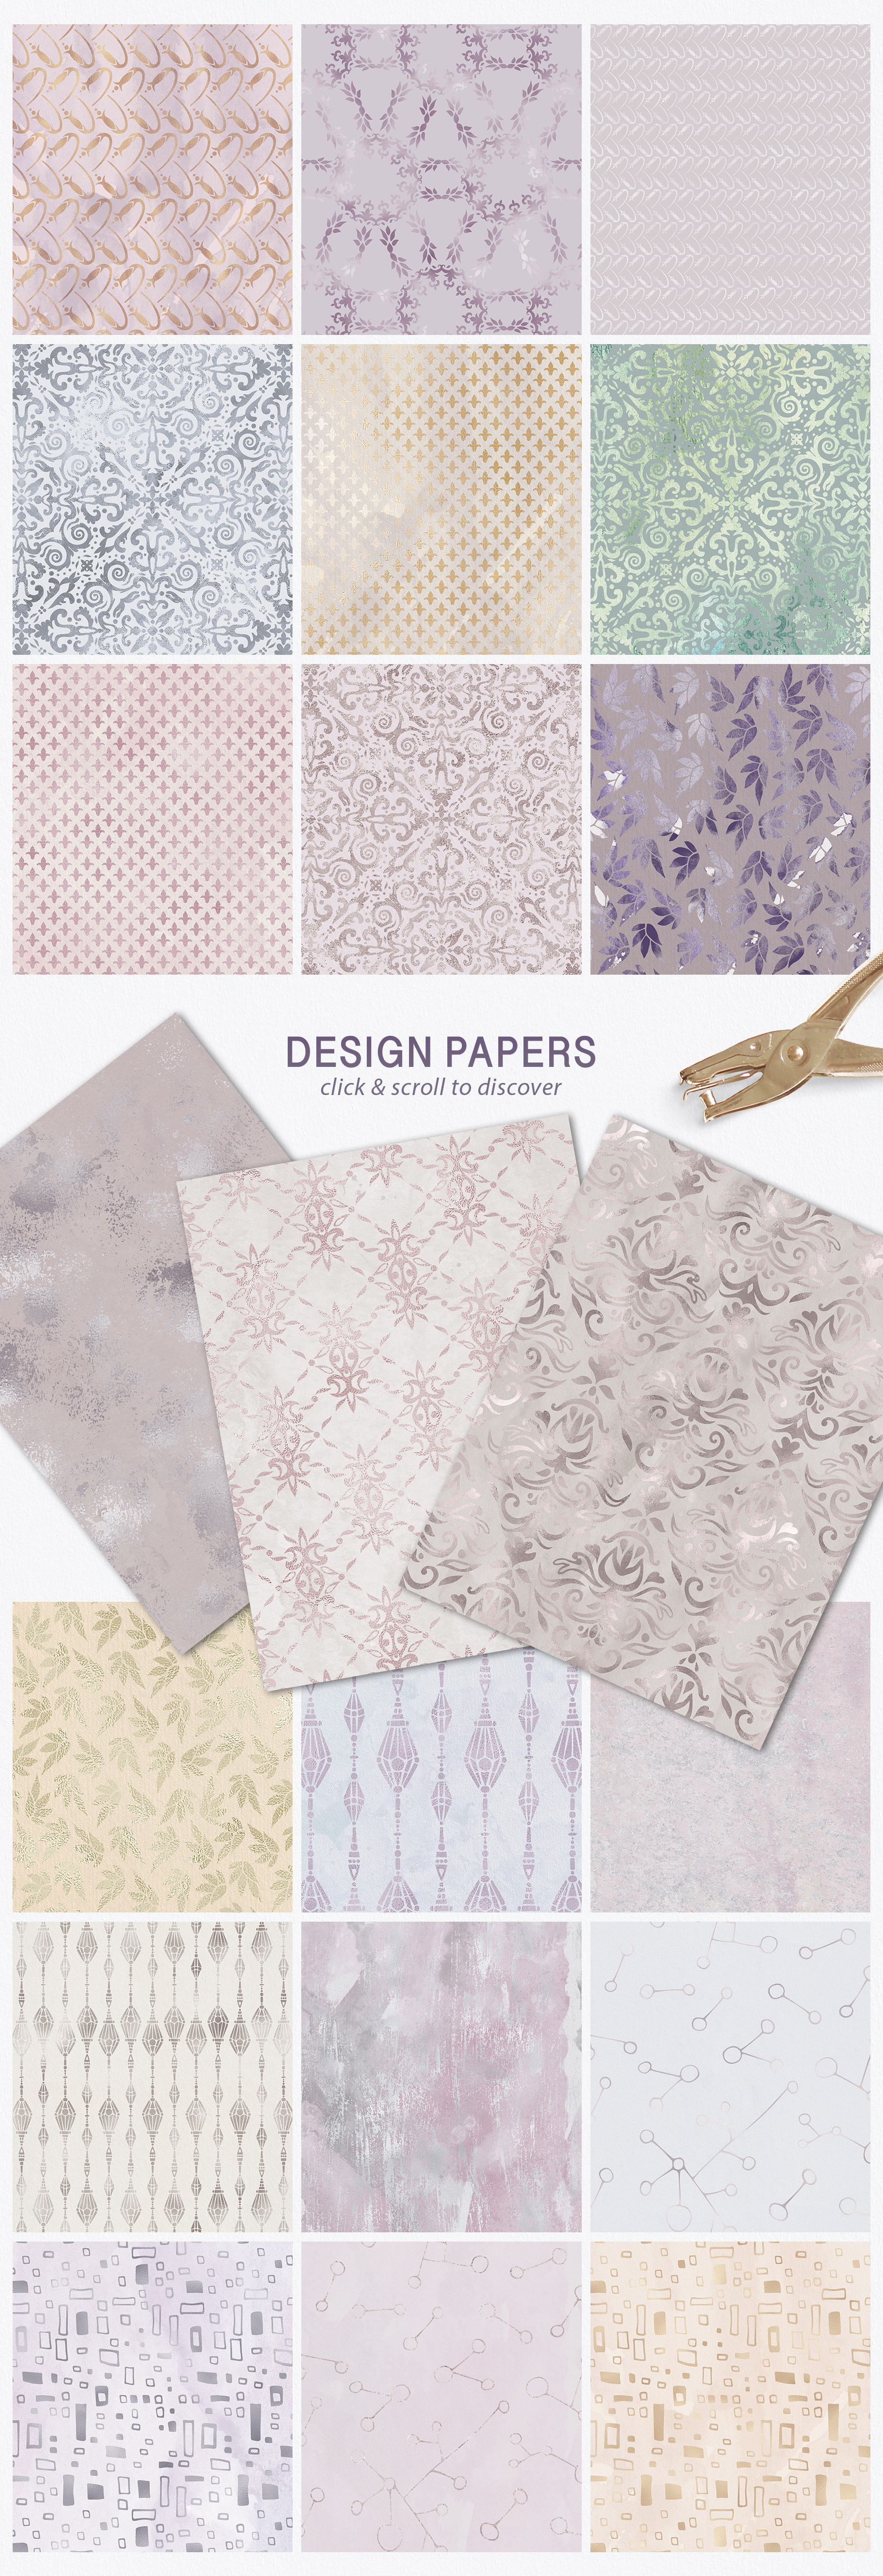 Seamless Textures & Patterns Bundle - Shabby Chic Design Kit example image 7